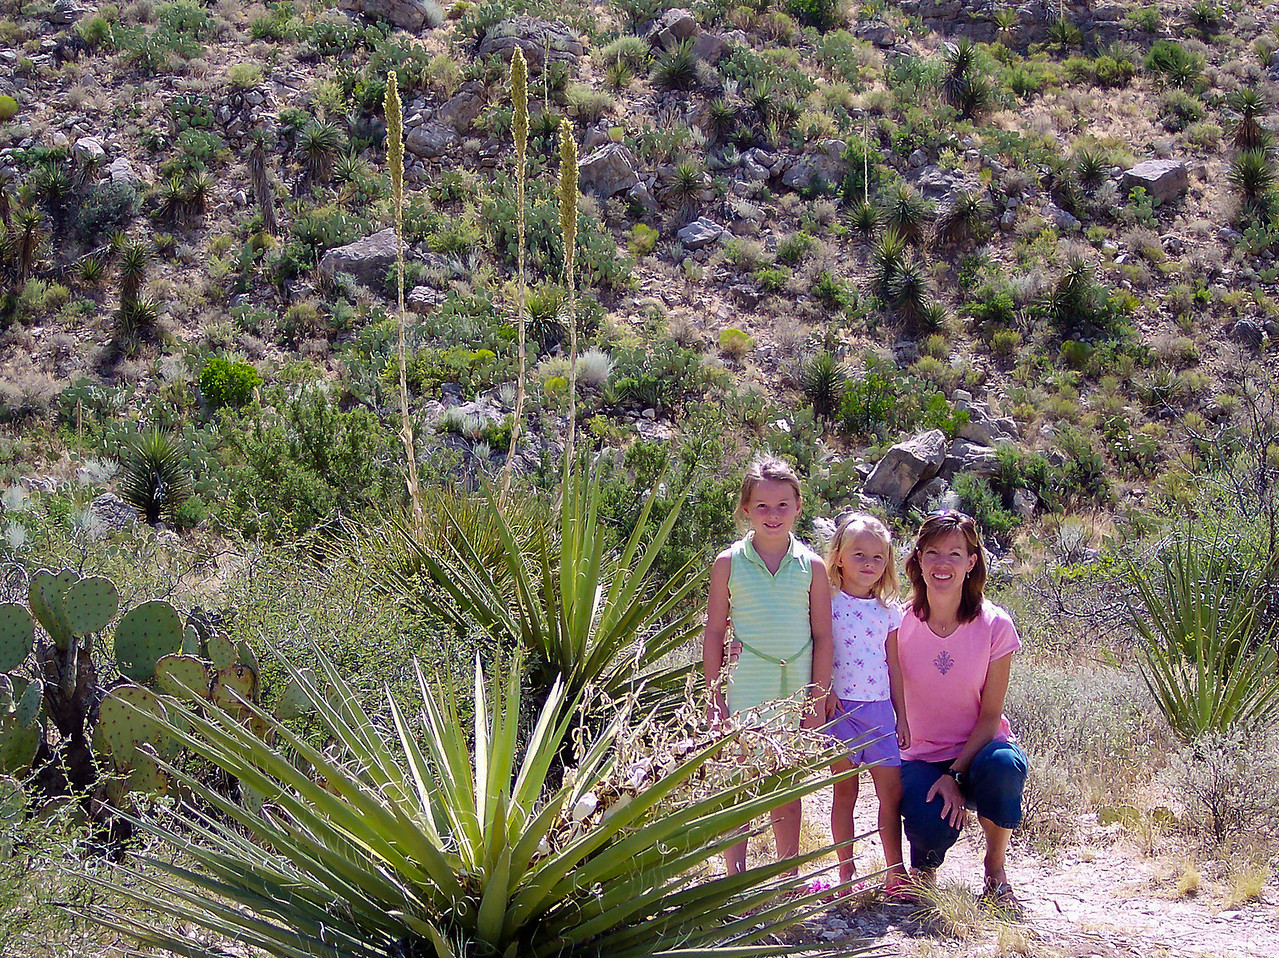 Lori, Katie and Caroline near the entrance of Carlsbad Caverns National Park, summer vacation in 2005.